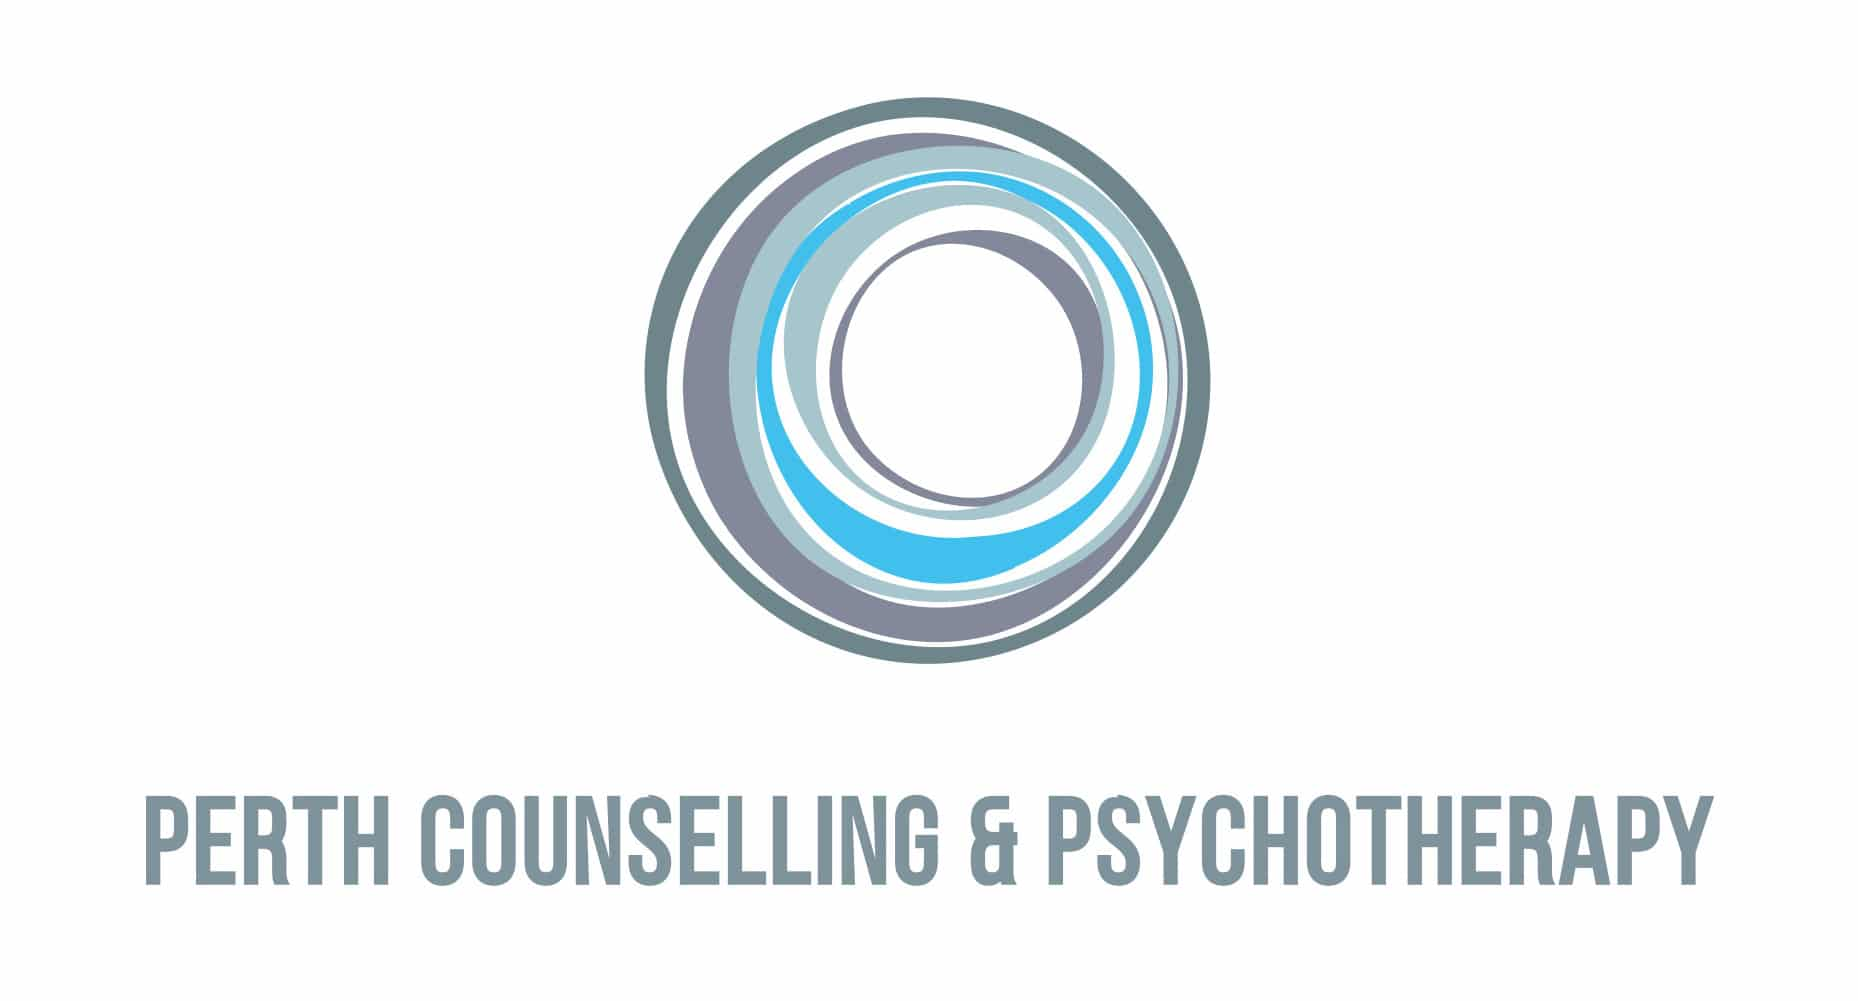 Perth Counselling and Psychotherapy Logo